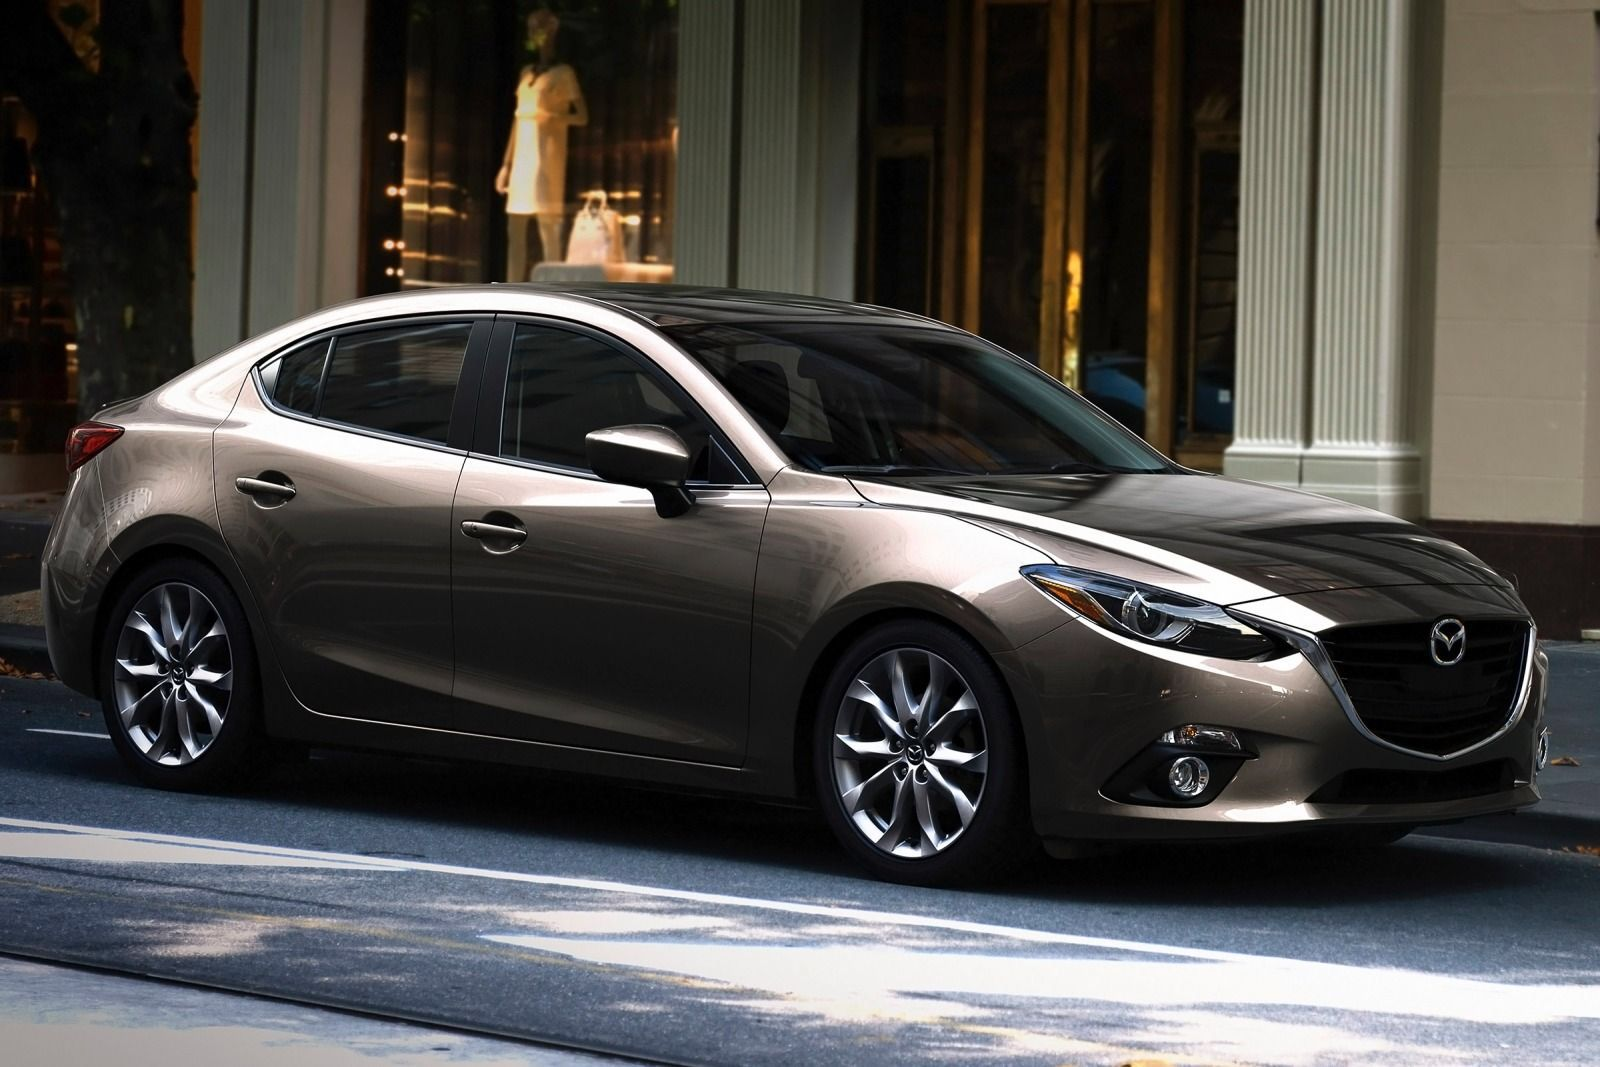 2018 mazda 3 sedan release date price car pinterest mazda sedans and cars